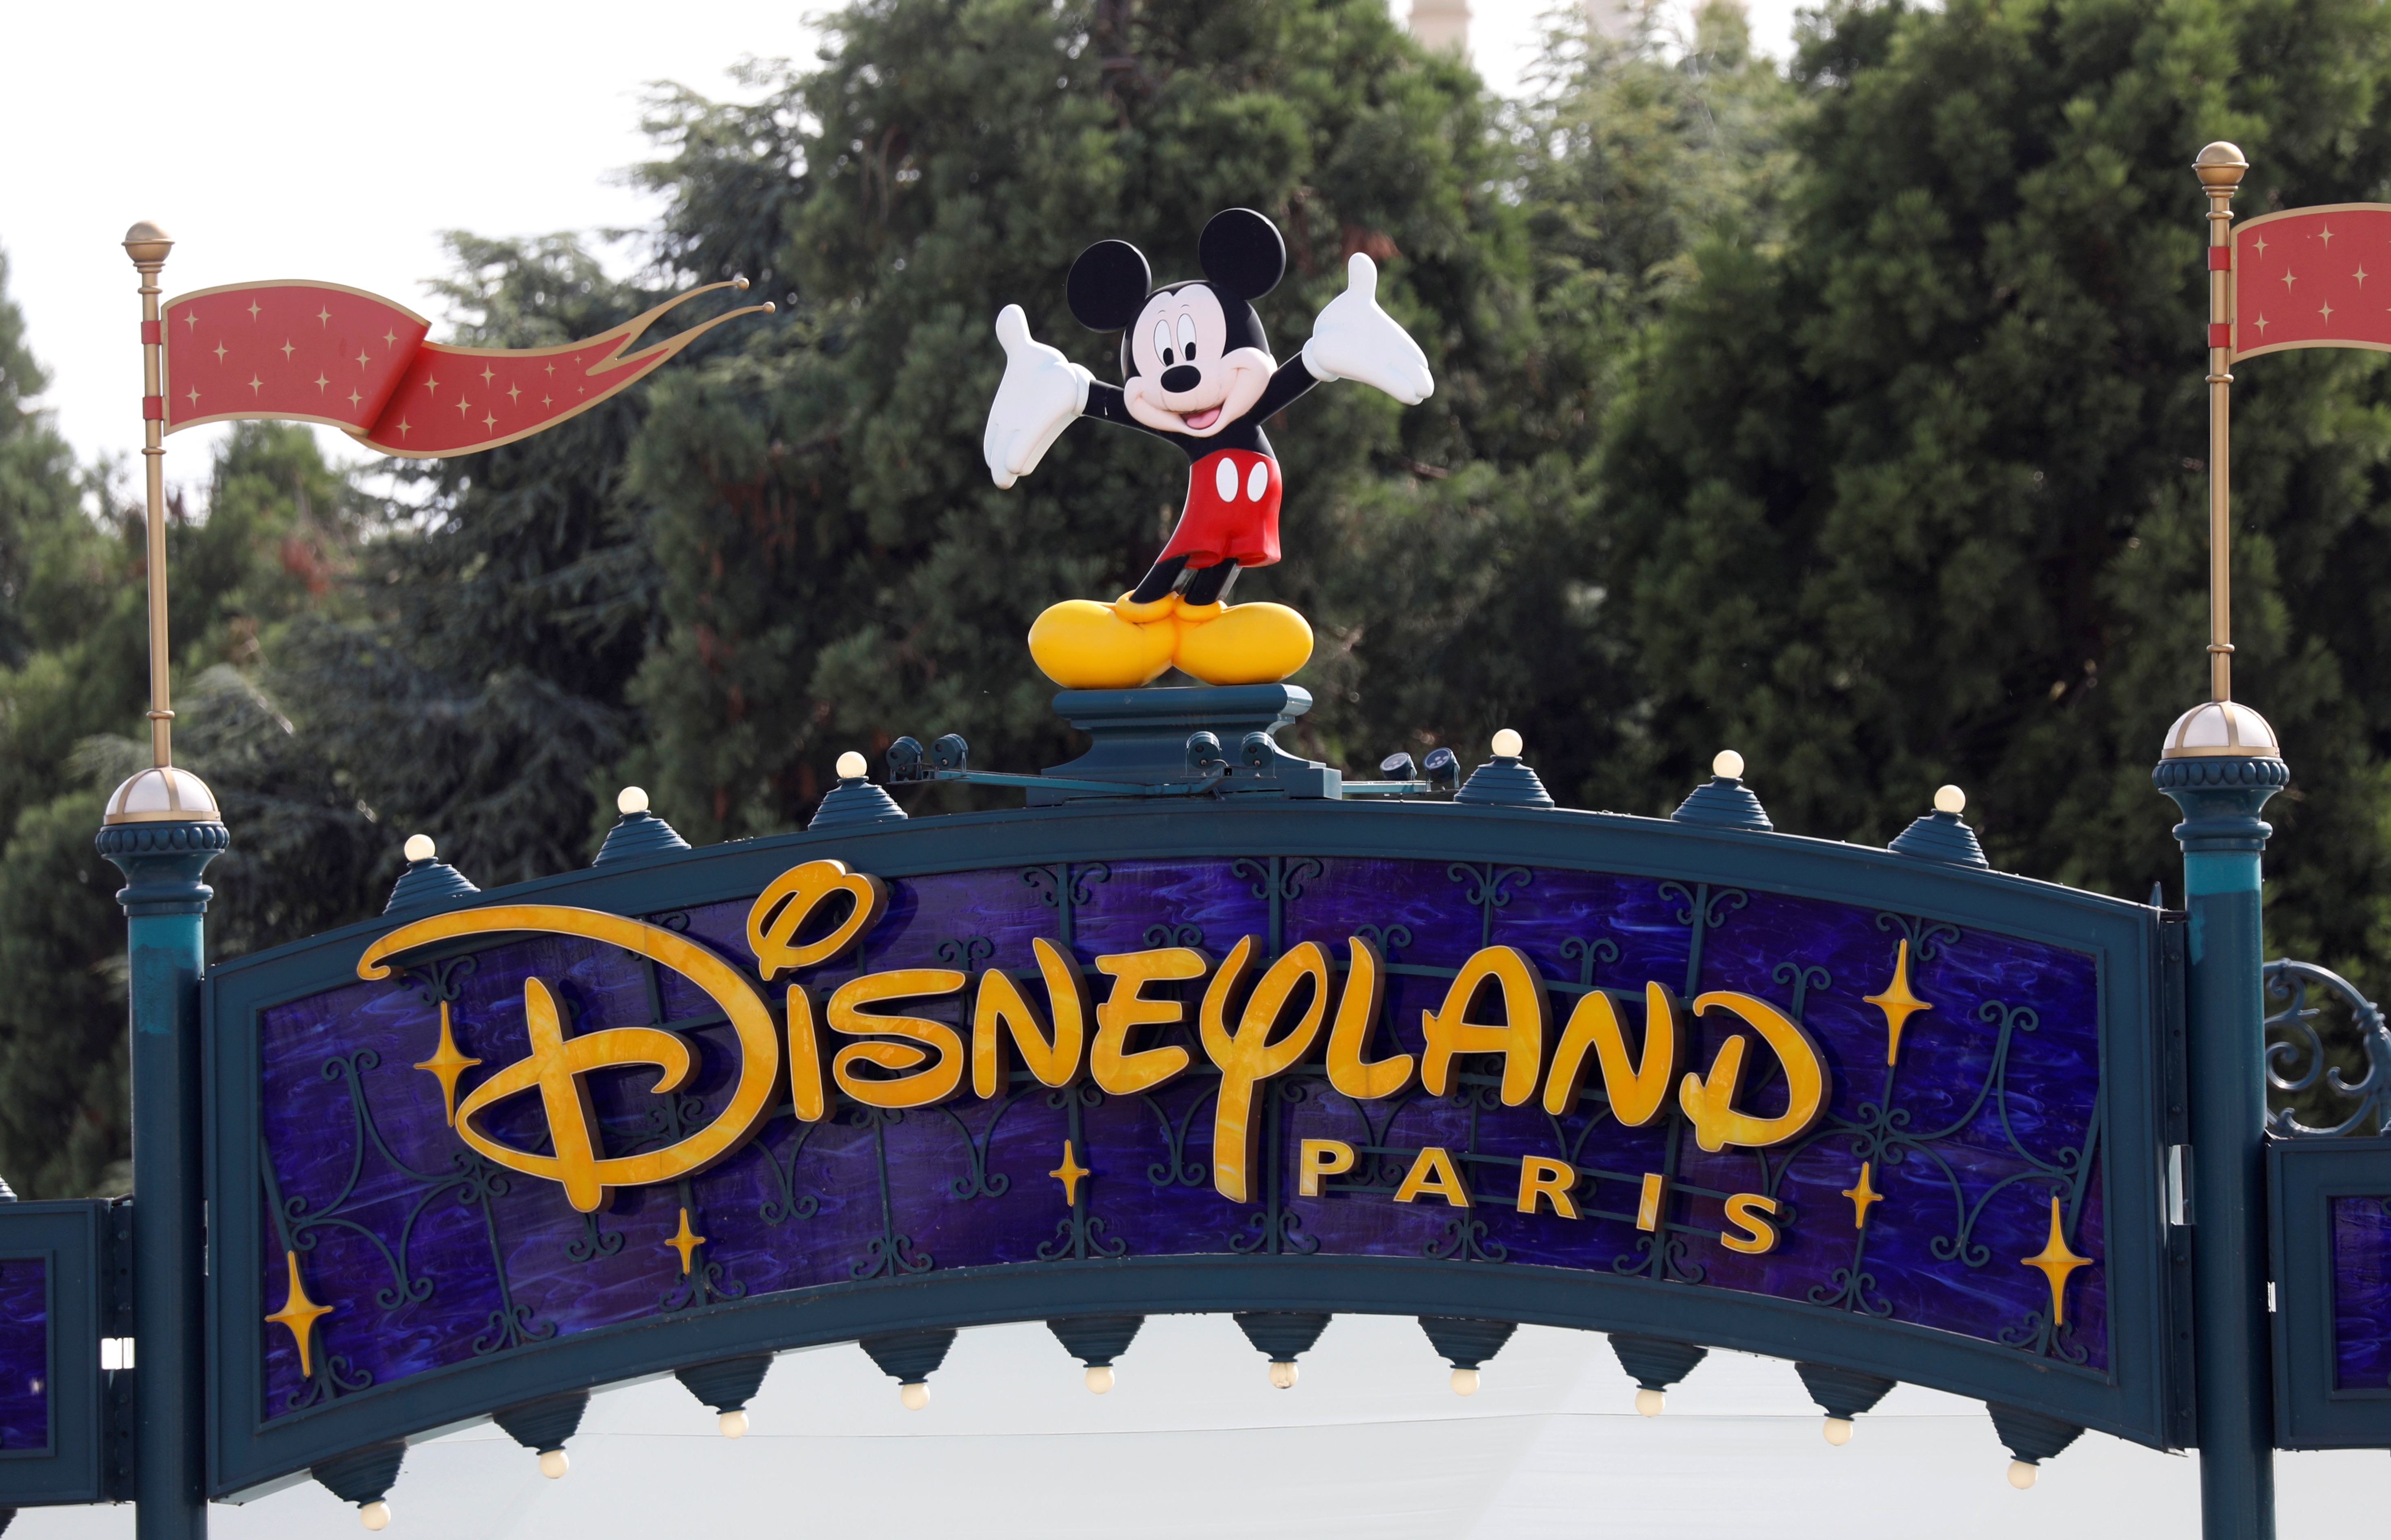 The logo of Disneyland Paris is seen in Marne-la-Vallee, near Paris, as the theme park prepares to reopen its doors to the public following the coronavirus disease (COVID-19) outbreak in France, July 9, 2020.   REUTERS/Charles Platiau